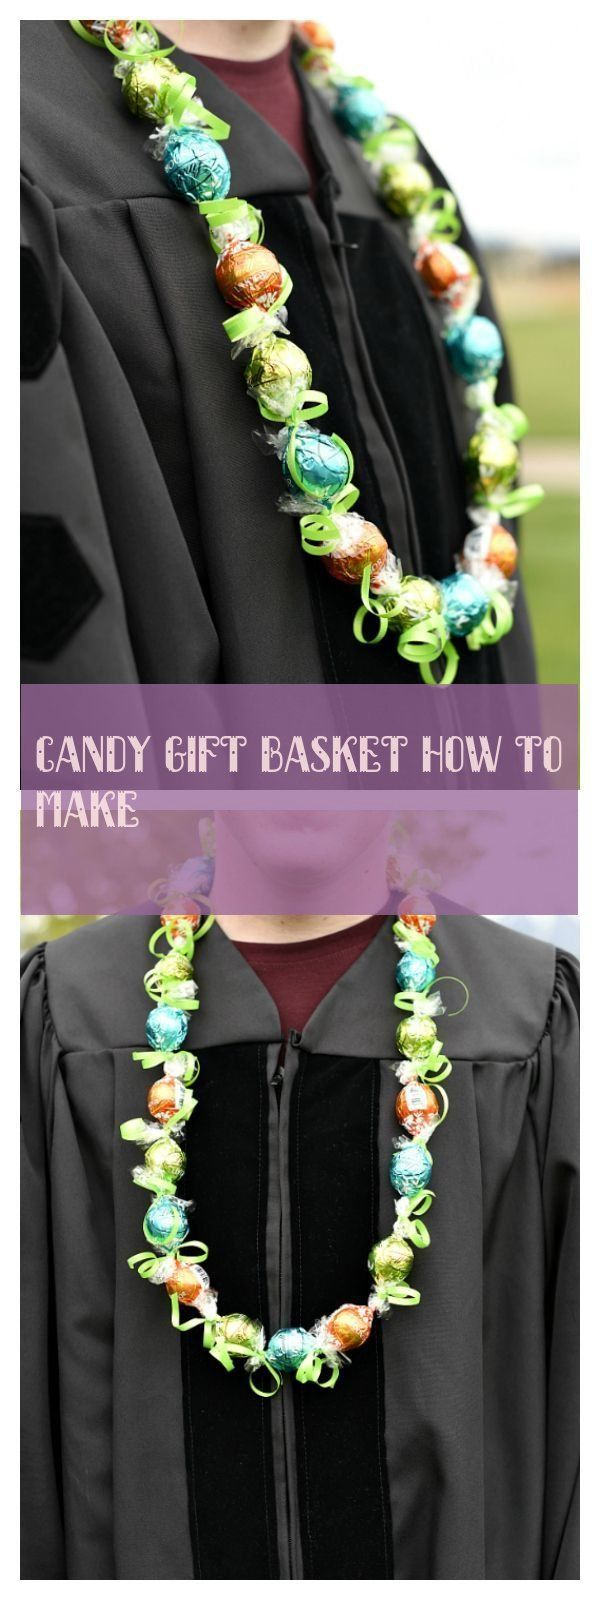 candy gift basket how to make